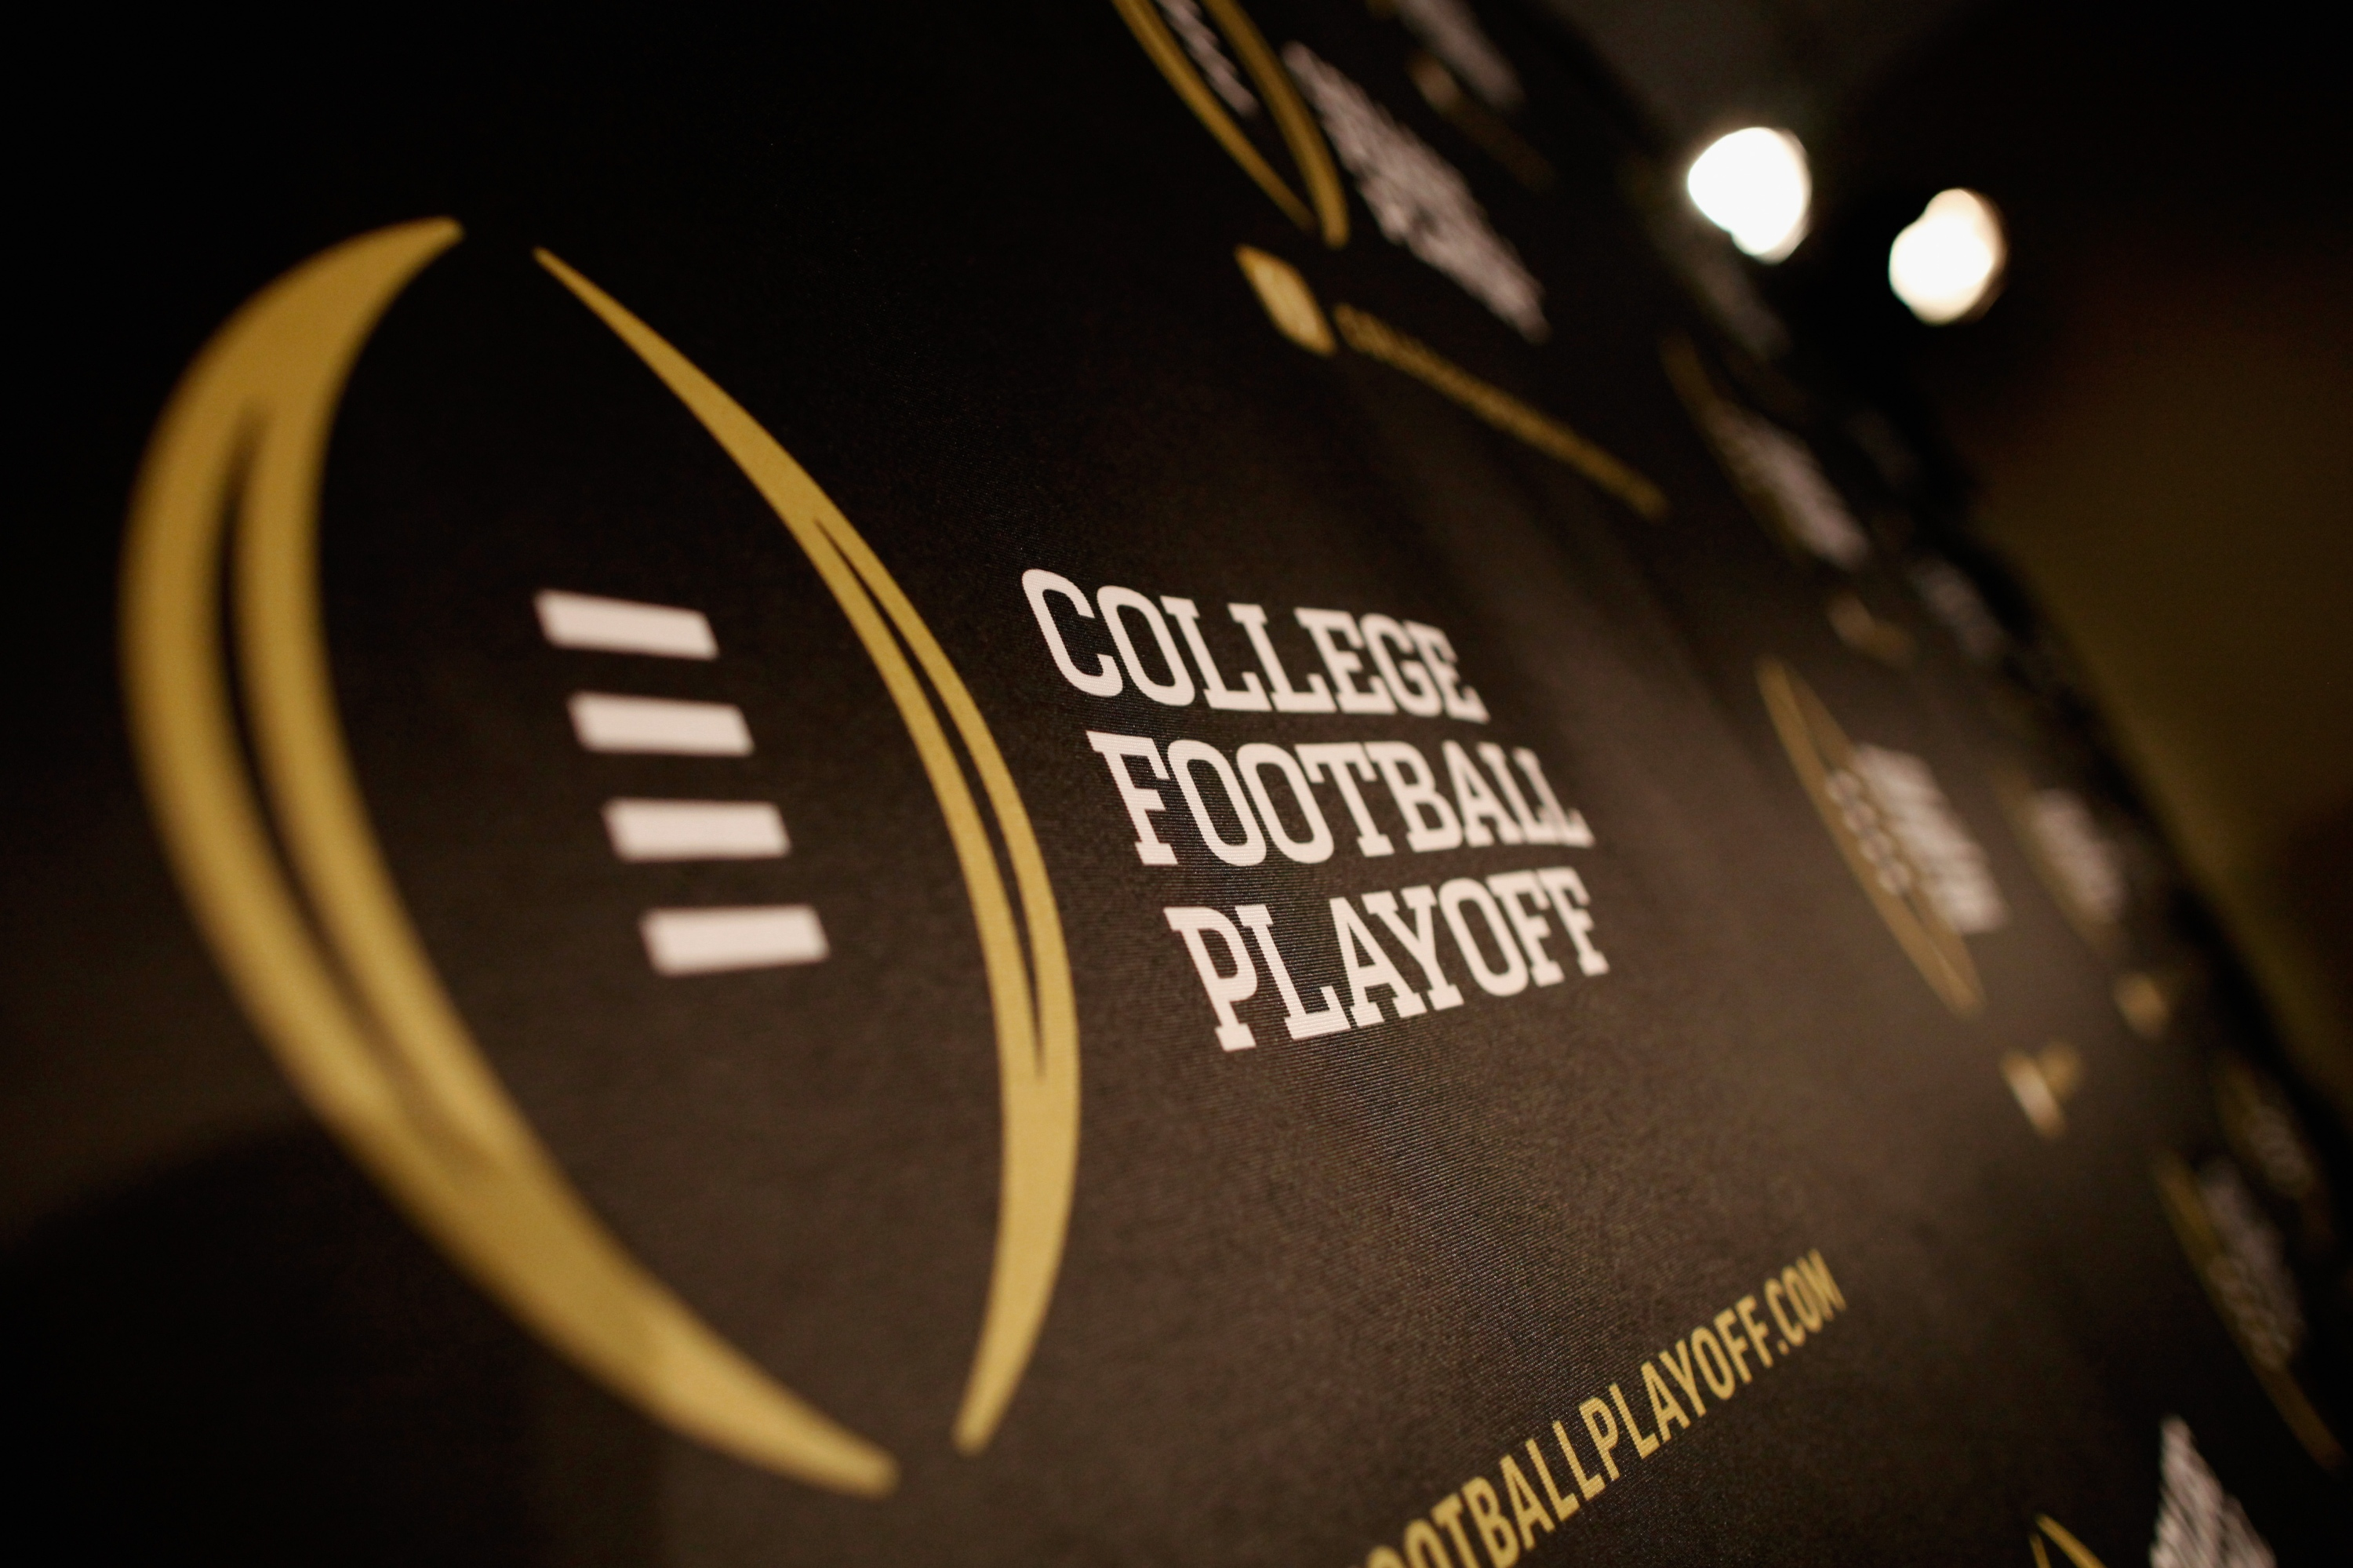 IRVING, TX - OCTOBER 16: A detail view of the College Football Playoff logo shown during a press conference on October 16, 2013 in Irving, Texas. (Photo by Tom Pennington/Getty Images)